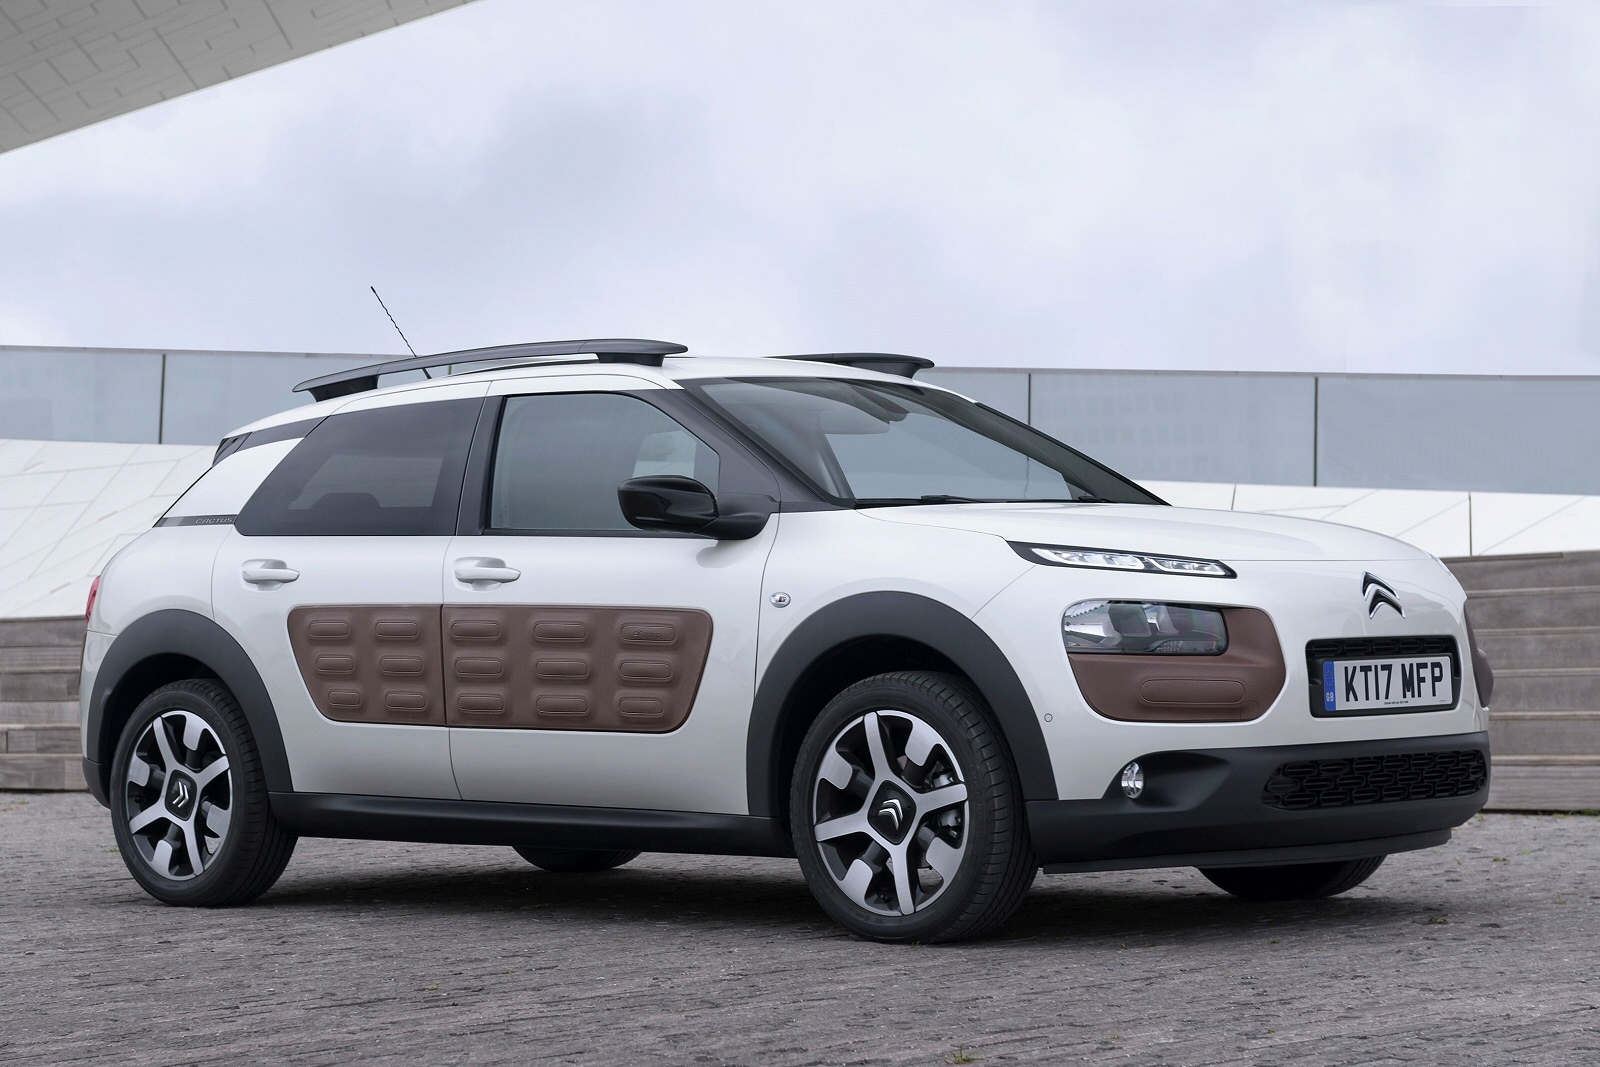 new citroen c4 cactus for sale 2018 prices finance deals robins and day. Black Bedroom Furniture Sets. Home Design Ideas